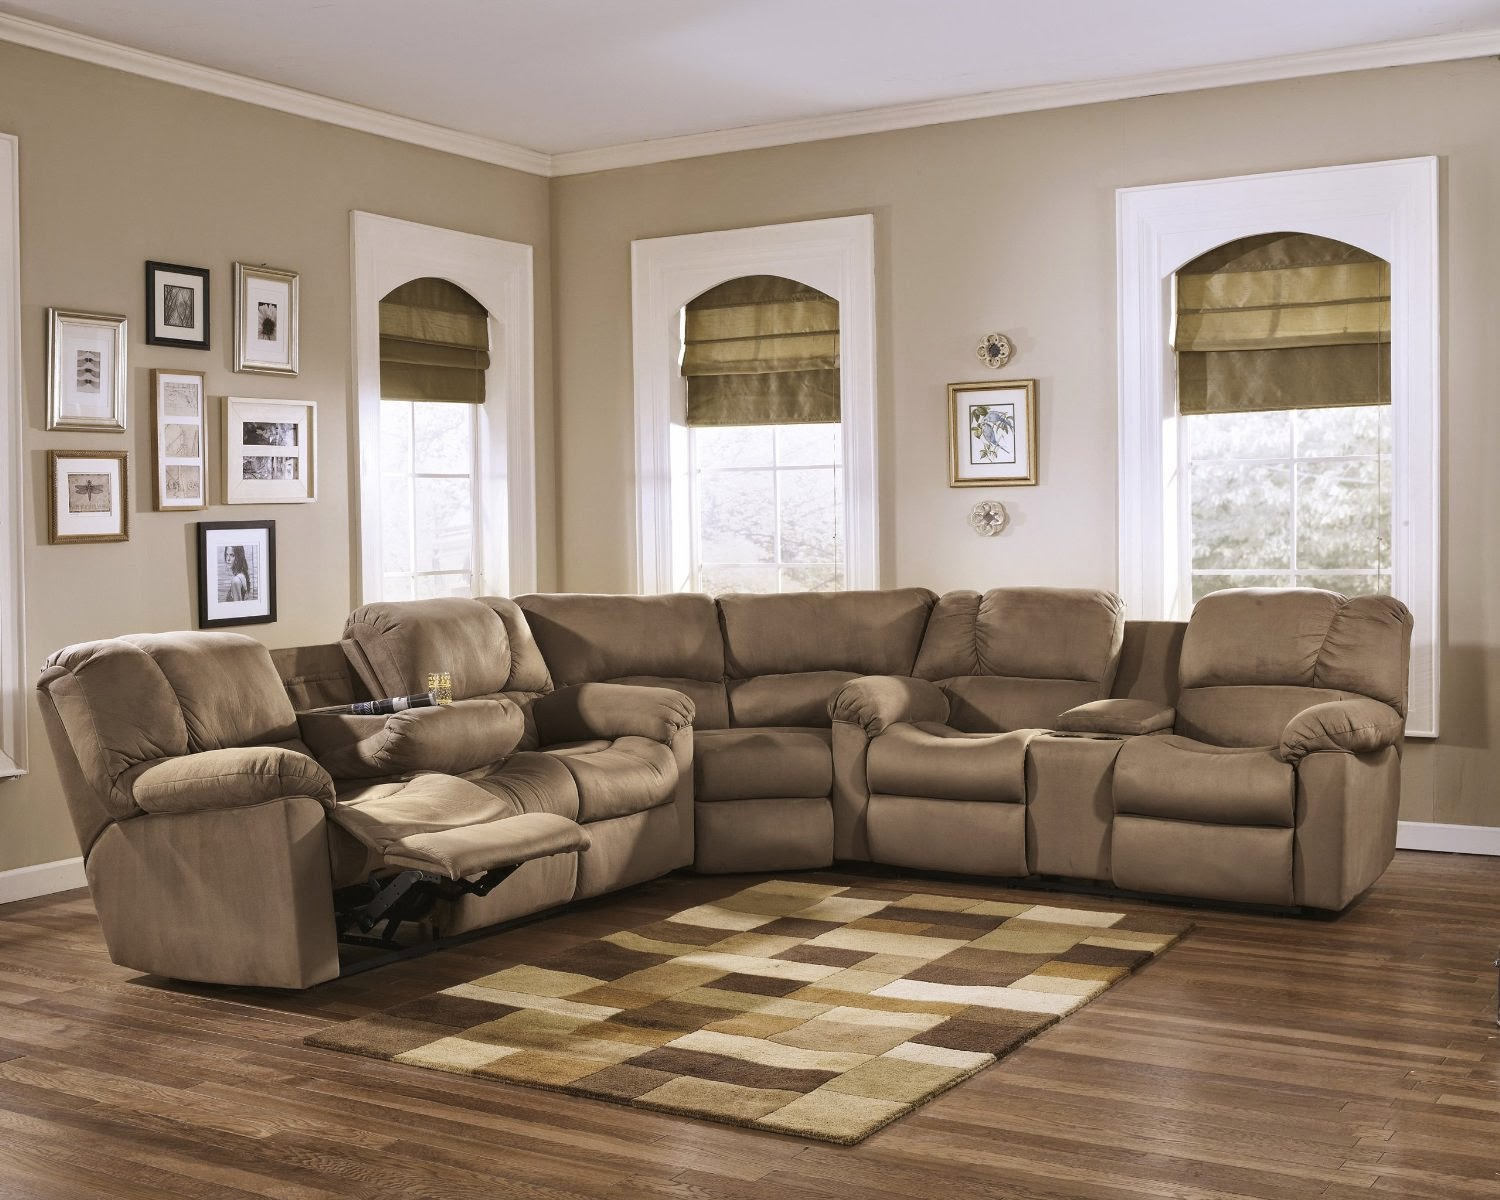 Reclining Sectional Sofa Fabric Leather Beds Toronto Best Brands Reviews